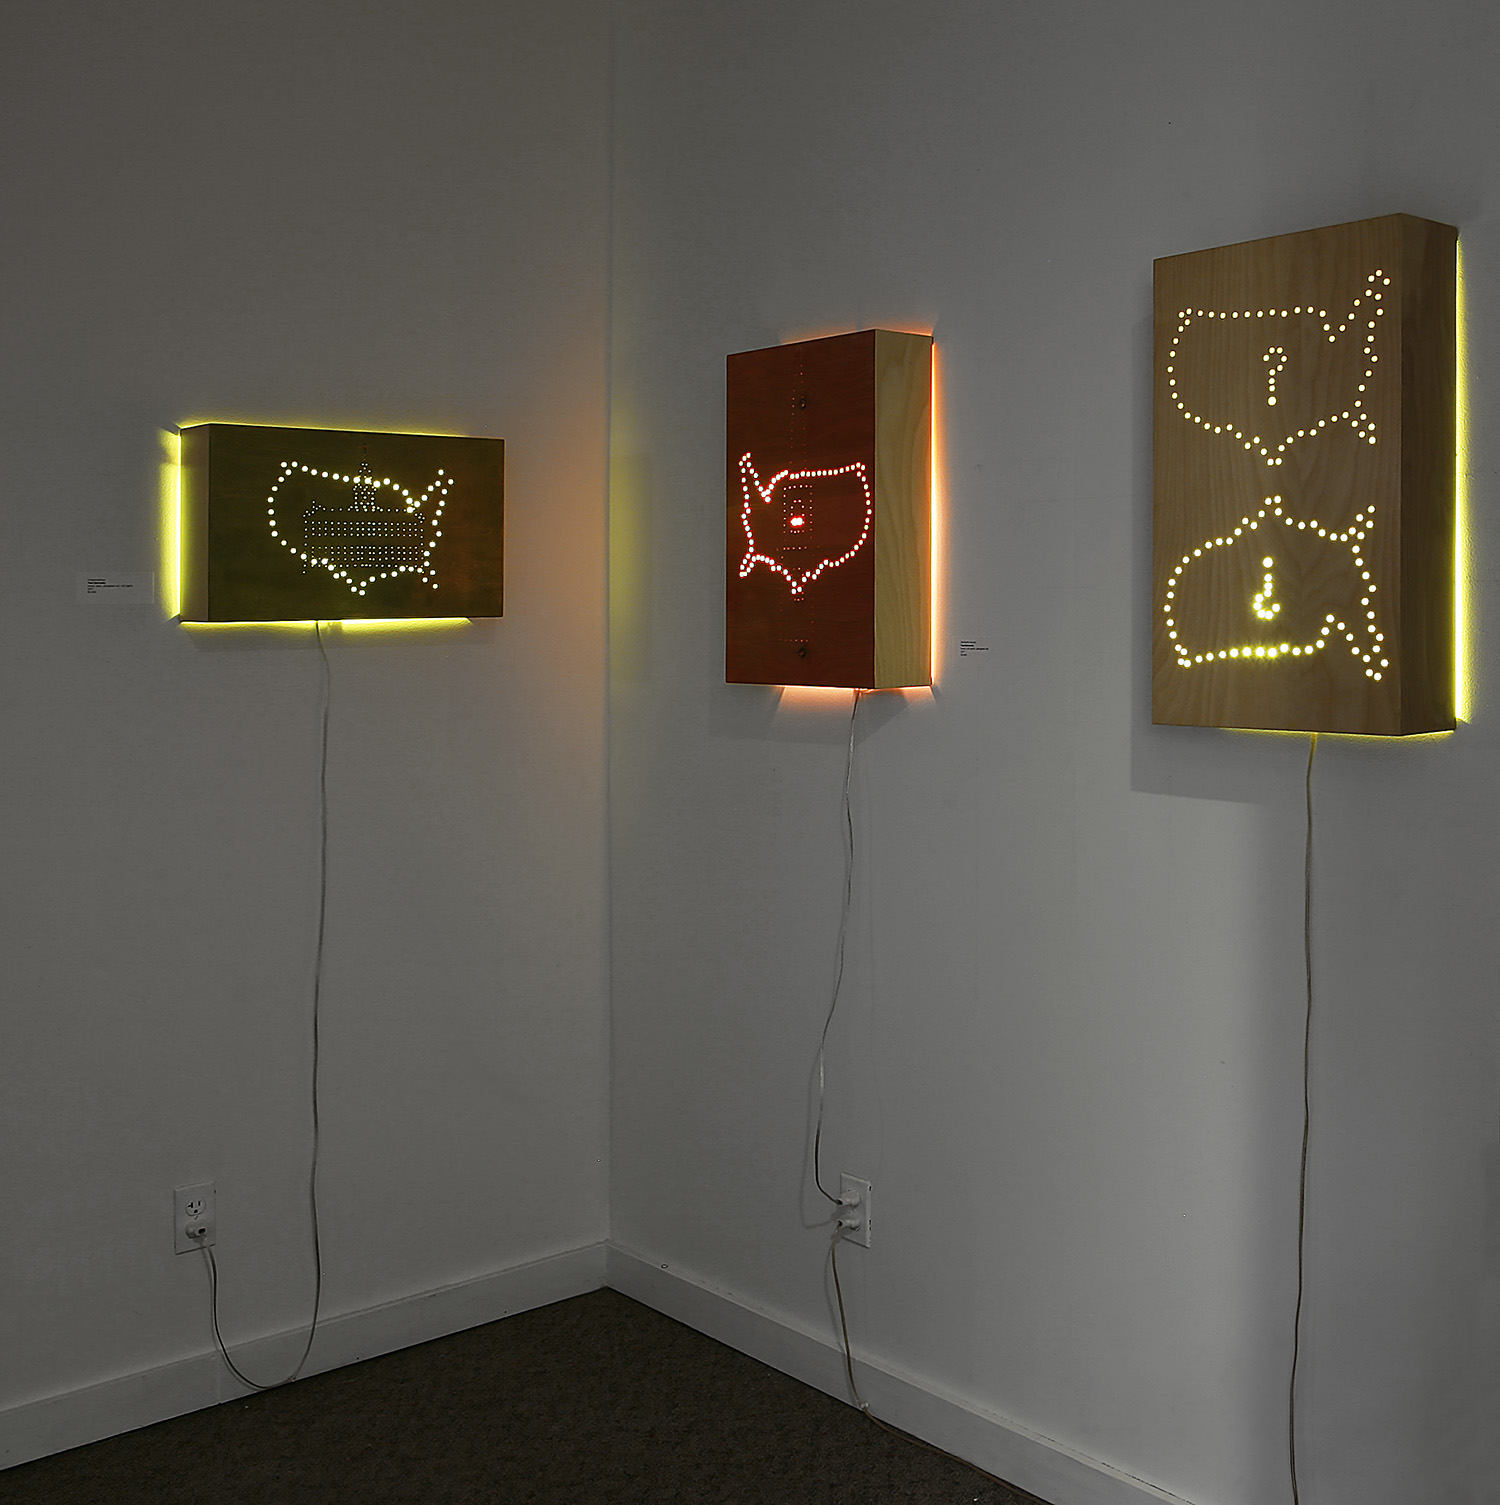 """Patriot Series"" installation, dimensions variable; wood, gold leaf, wood dye, plexi rod, LED lights; © Tom Gormally 2017"